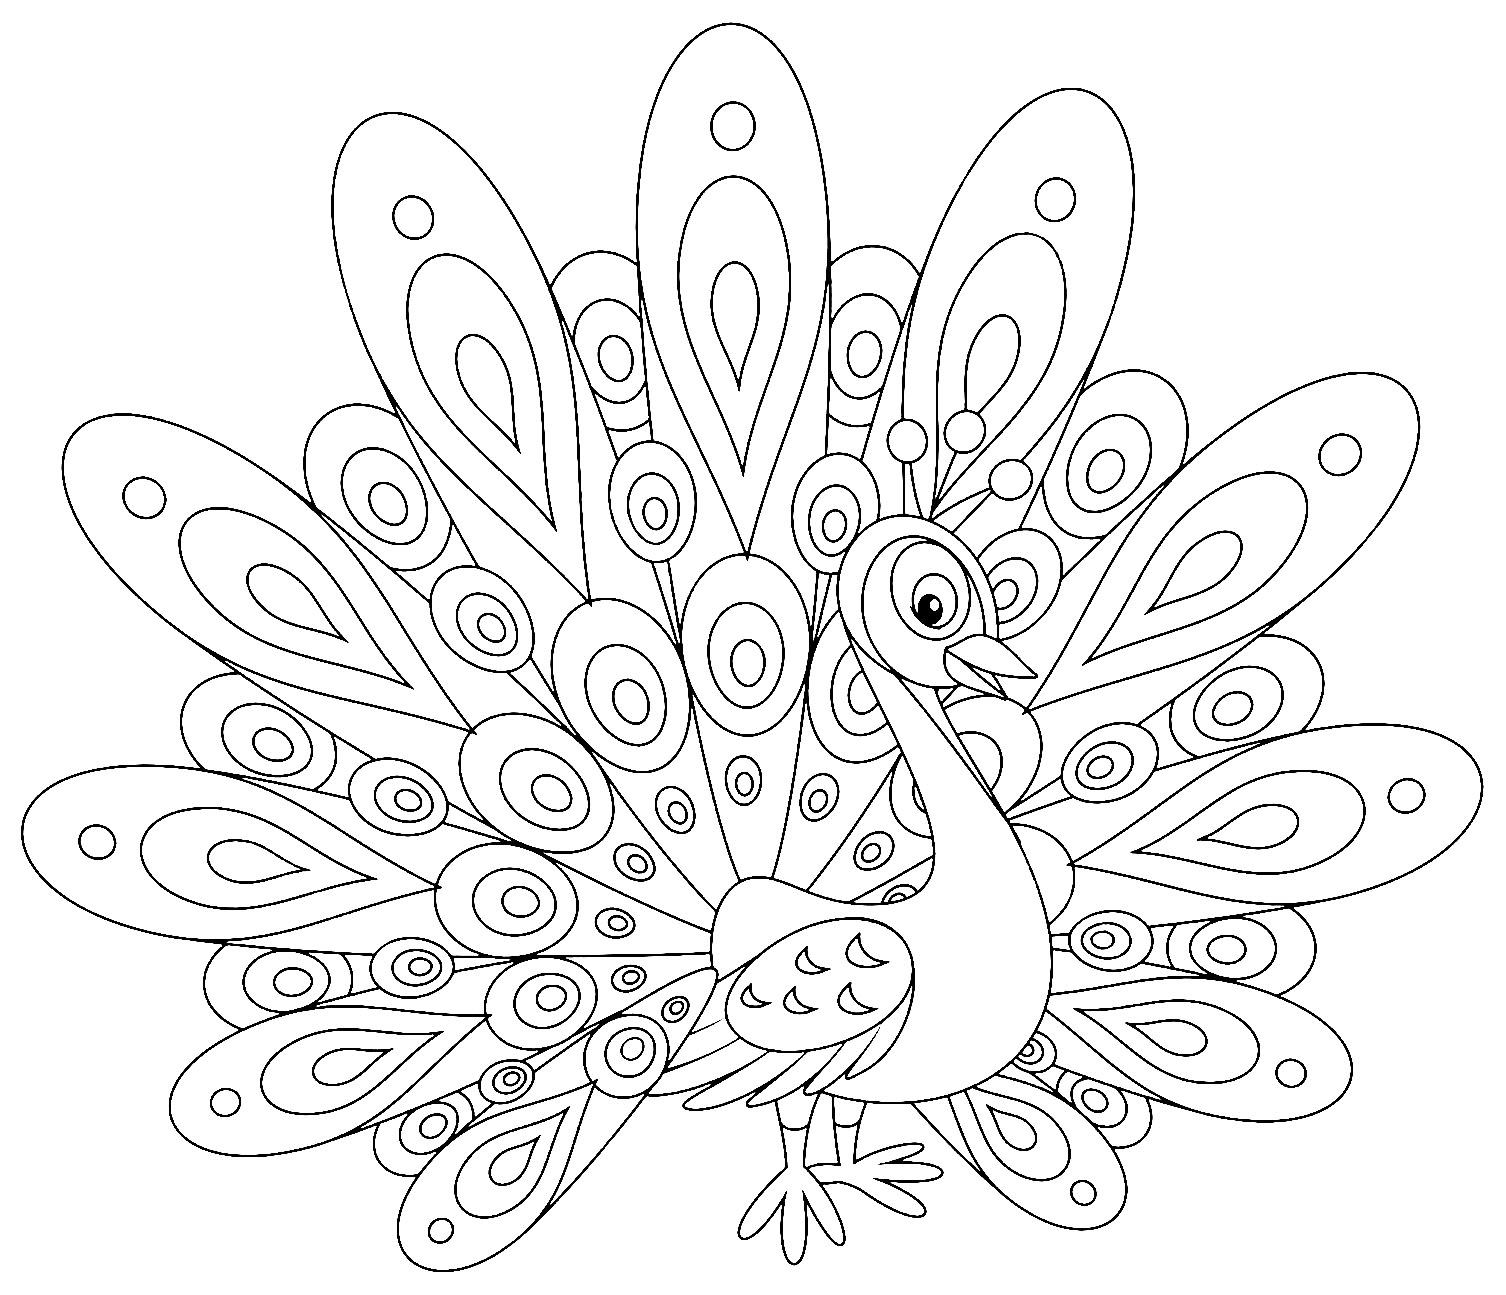 Simple Peacocks coloring page to download for free